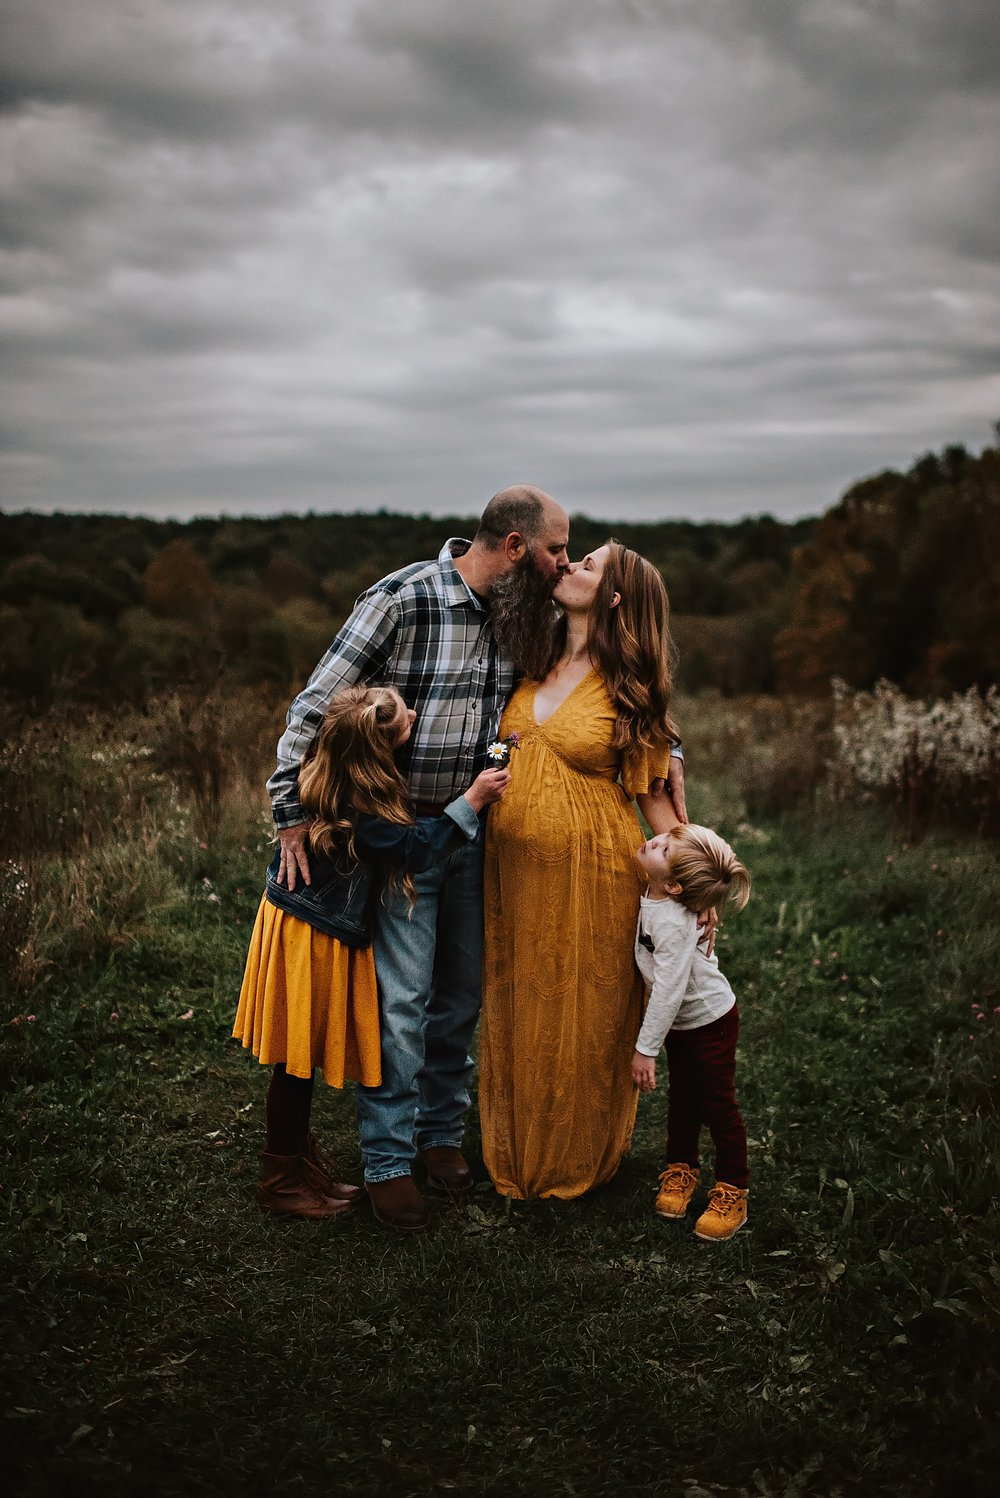 lauren-grayson-photography-akron-ohio-maternity-session-fall-family-photos-outdoors-dawson_0058.jpg